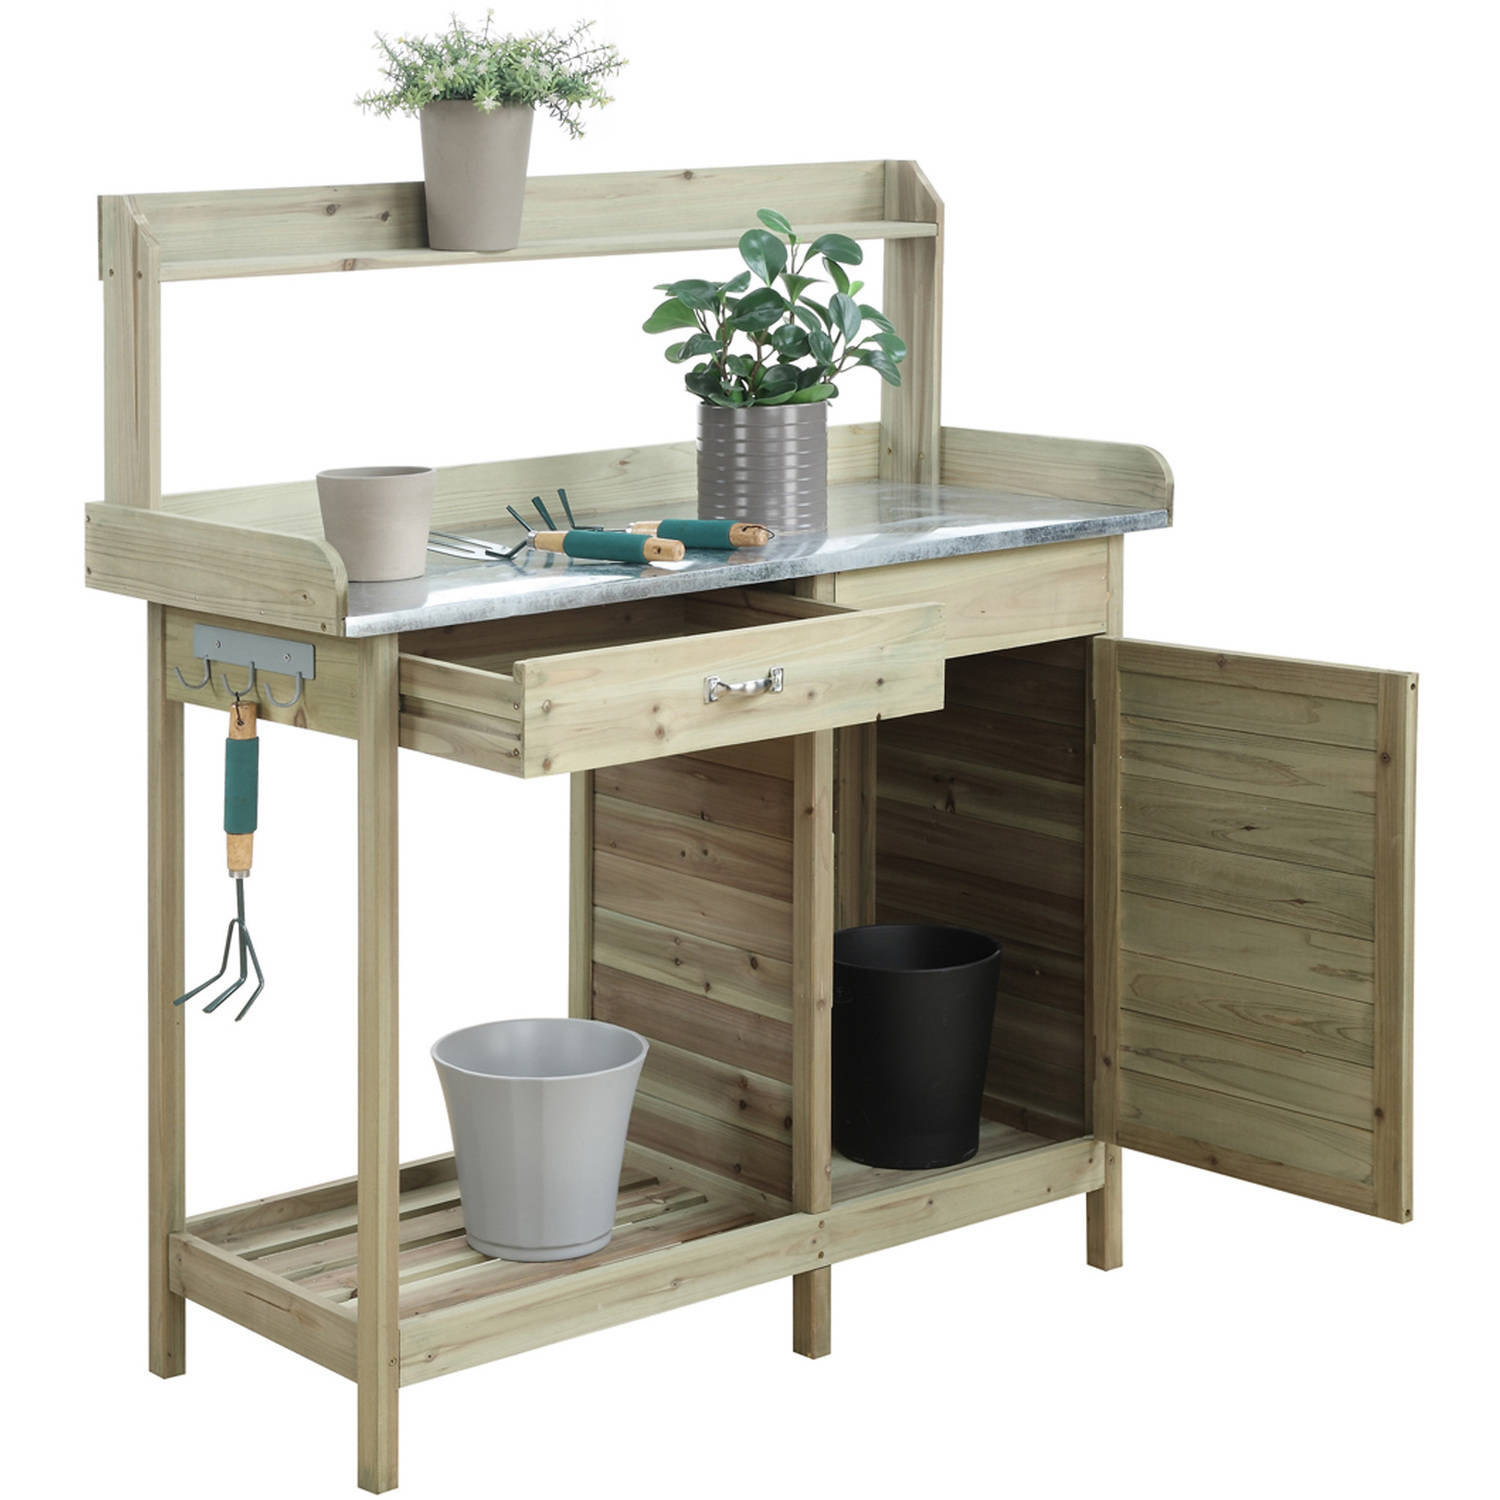 Convenience Concepts Planters and Potts Deluxe Potting Bench with ...